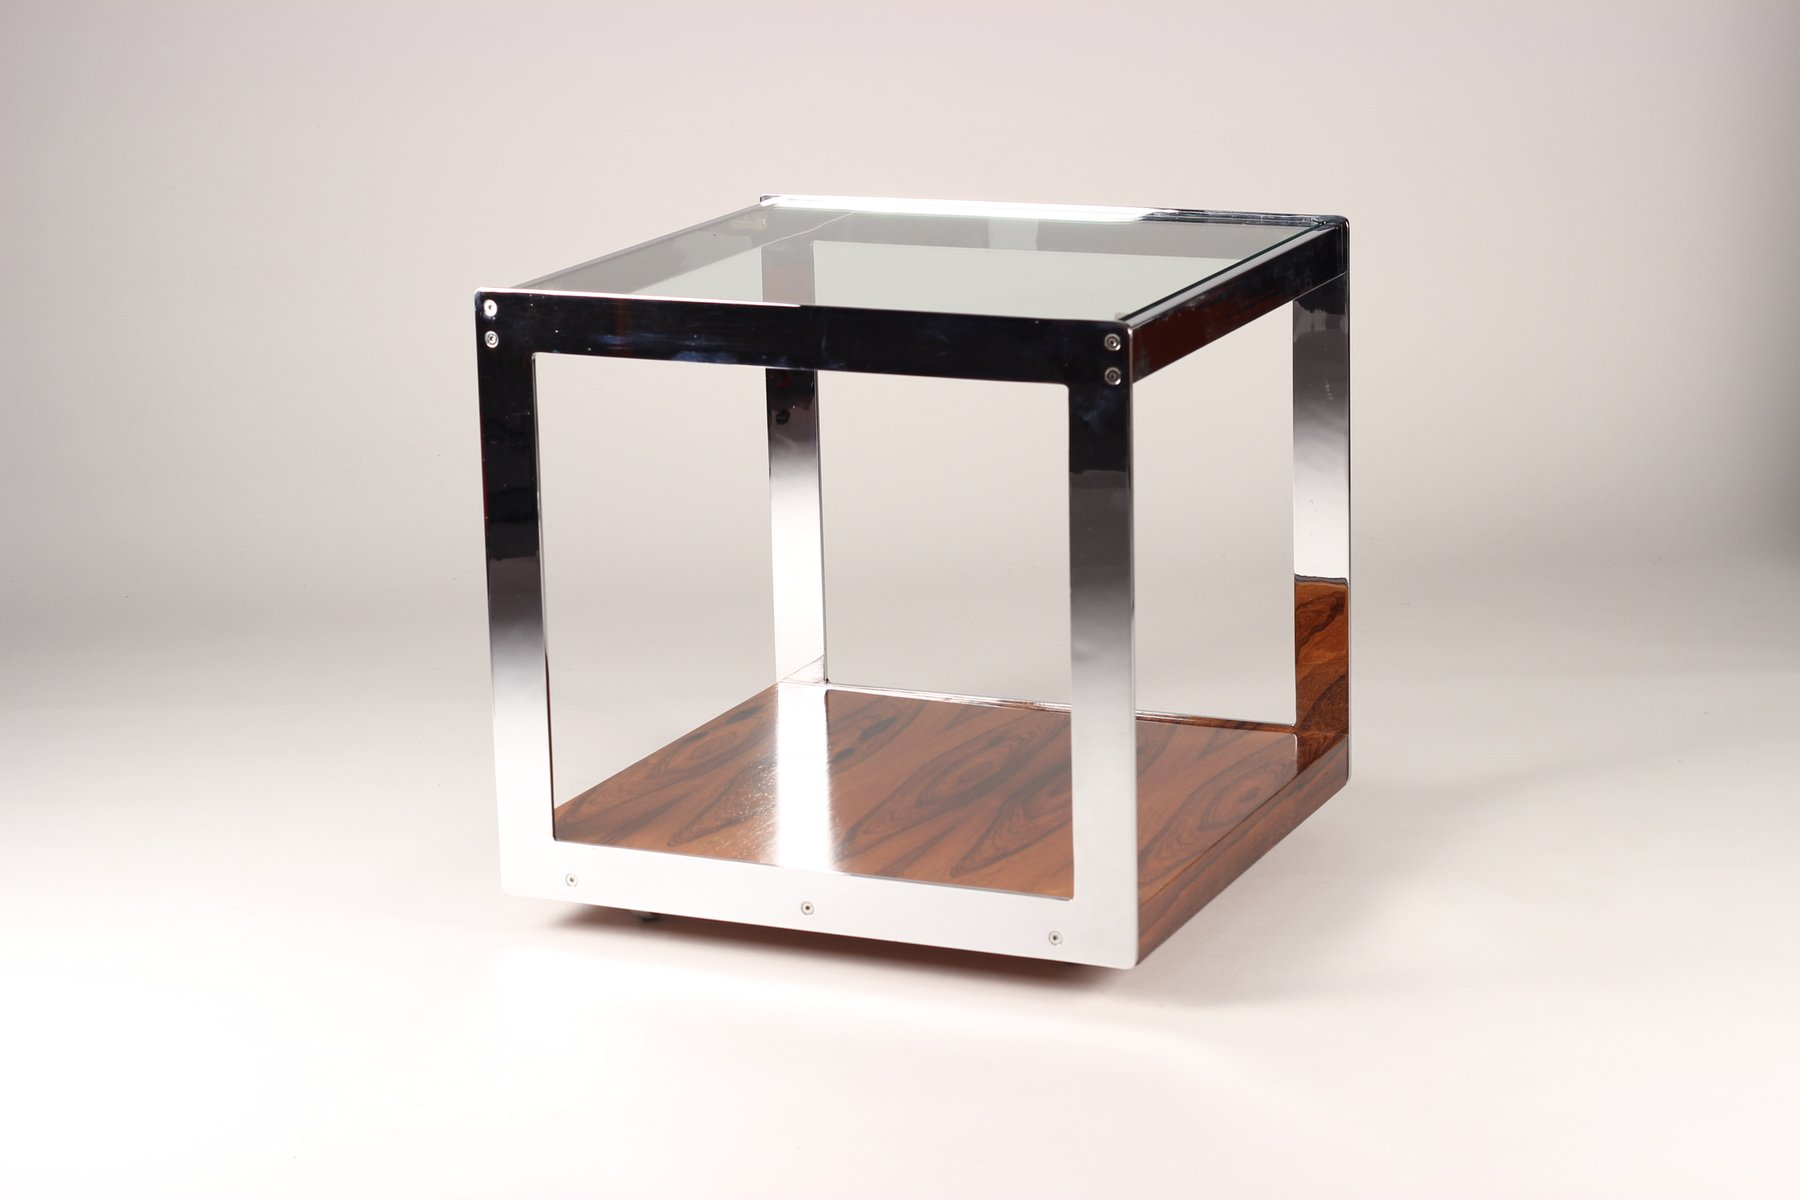 Table Appoint Verre Table D Appoint Mid Century En Palissandre Chrome Et Verre Par Richard Young Pour Merrow Associates